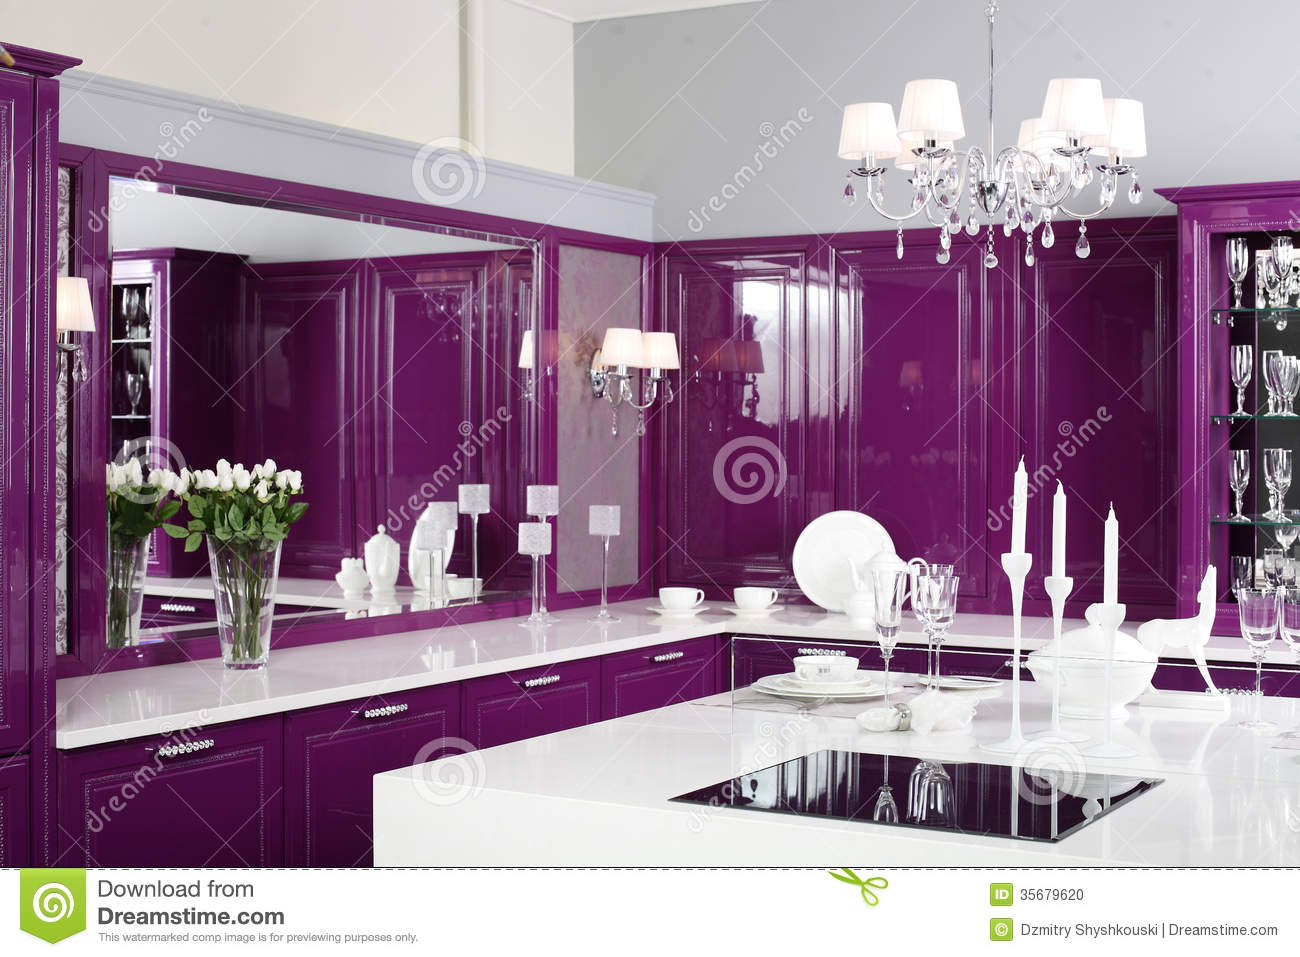 Modern purple kitchen with stylish furniture stock photo for Stylish modern furniture